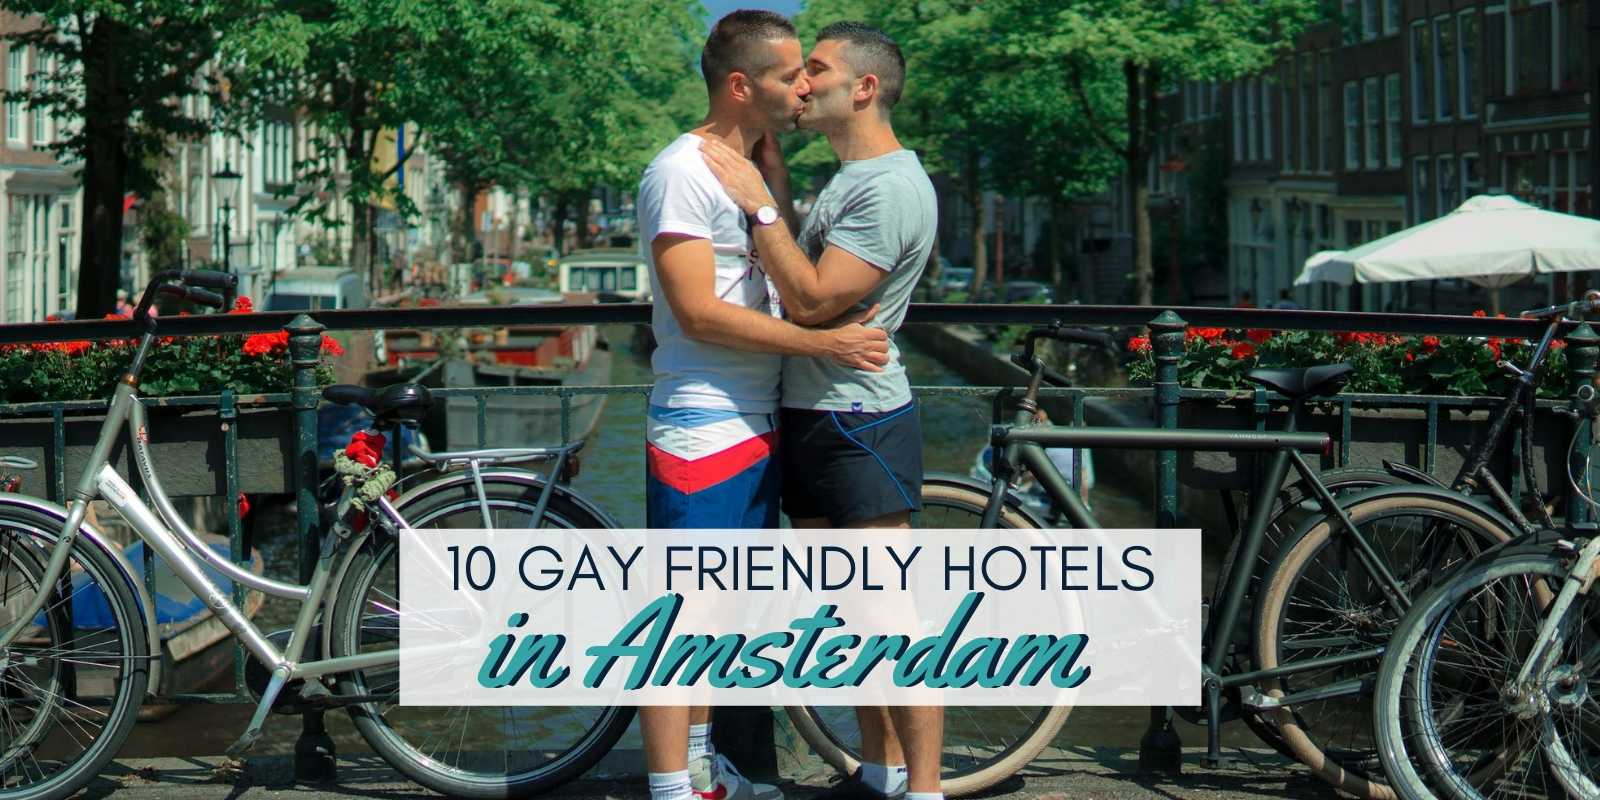 Dont worry be gay amsterdam